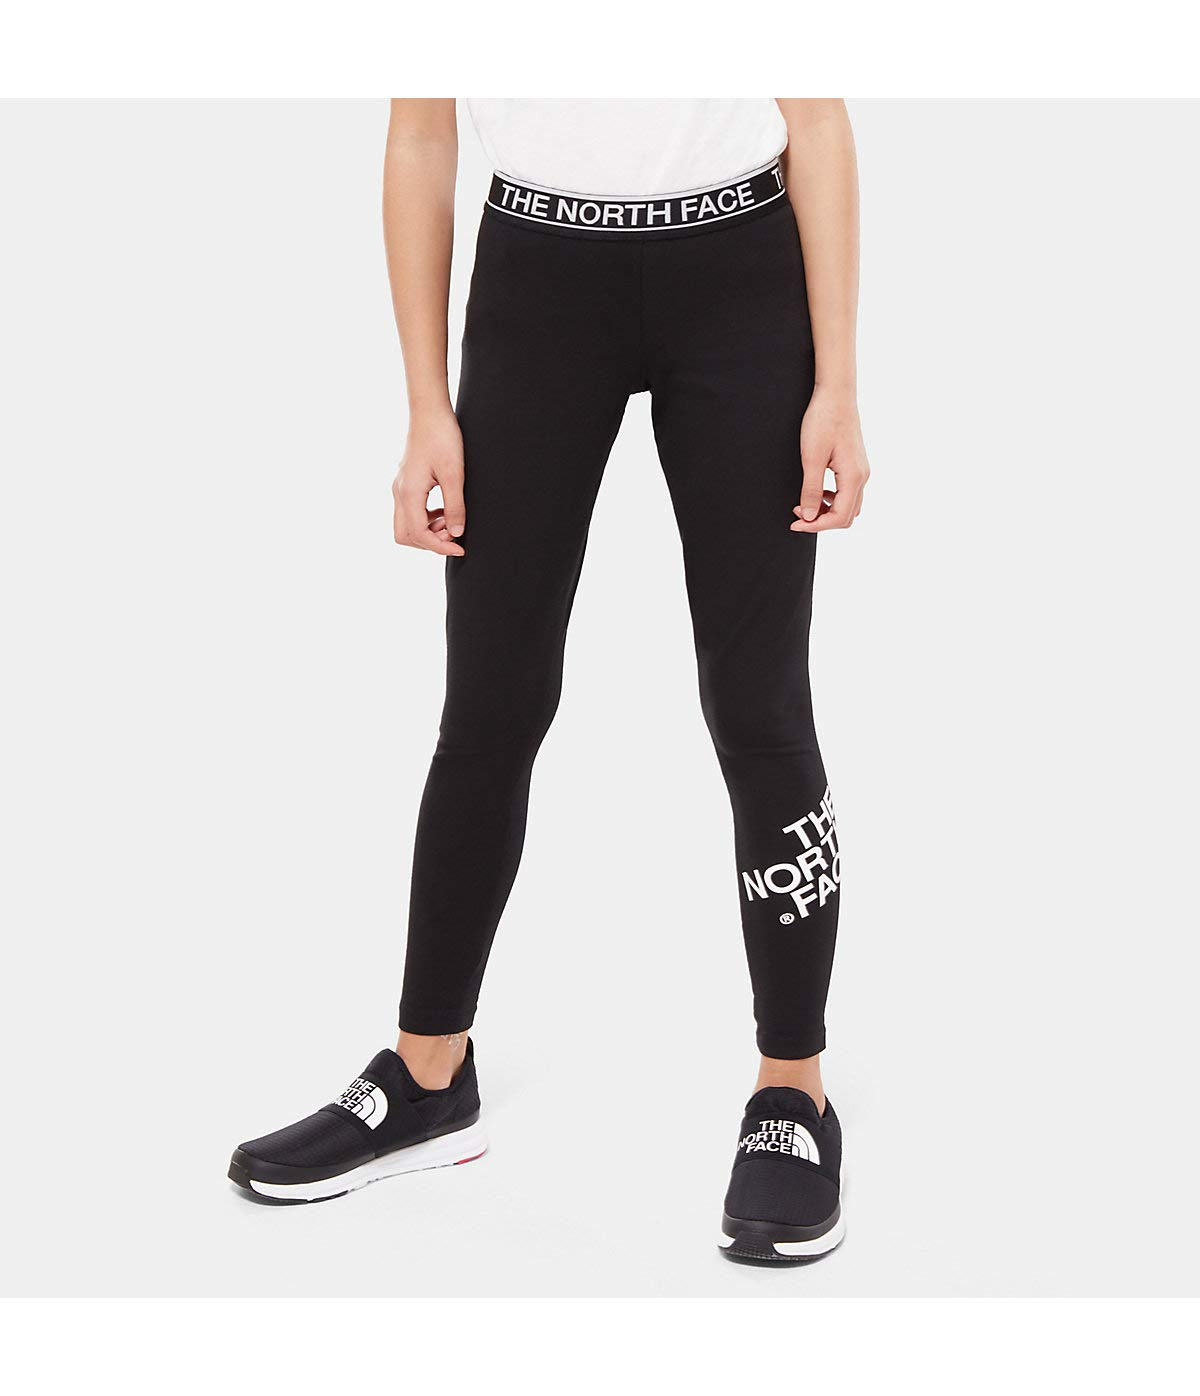 THE NORTH FACE Mädchen Cotton Blend Leggings